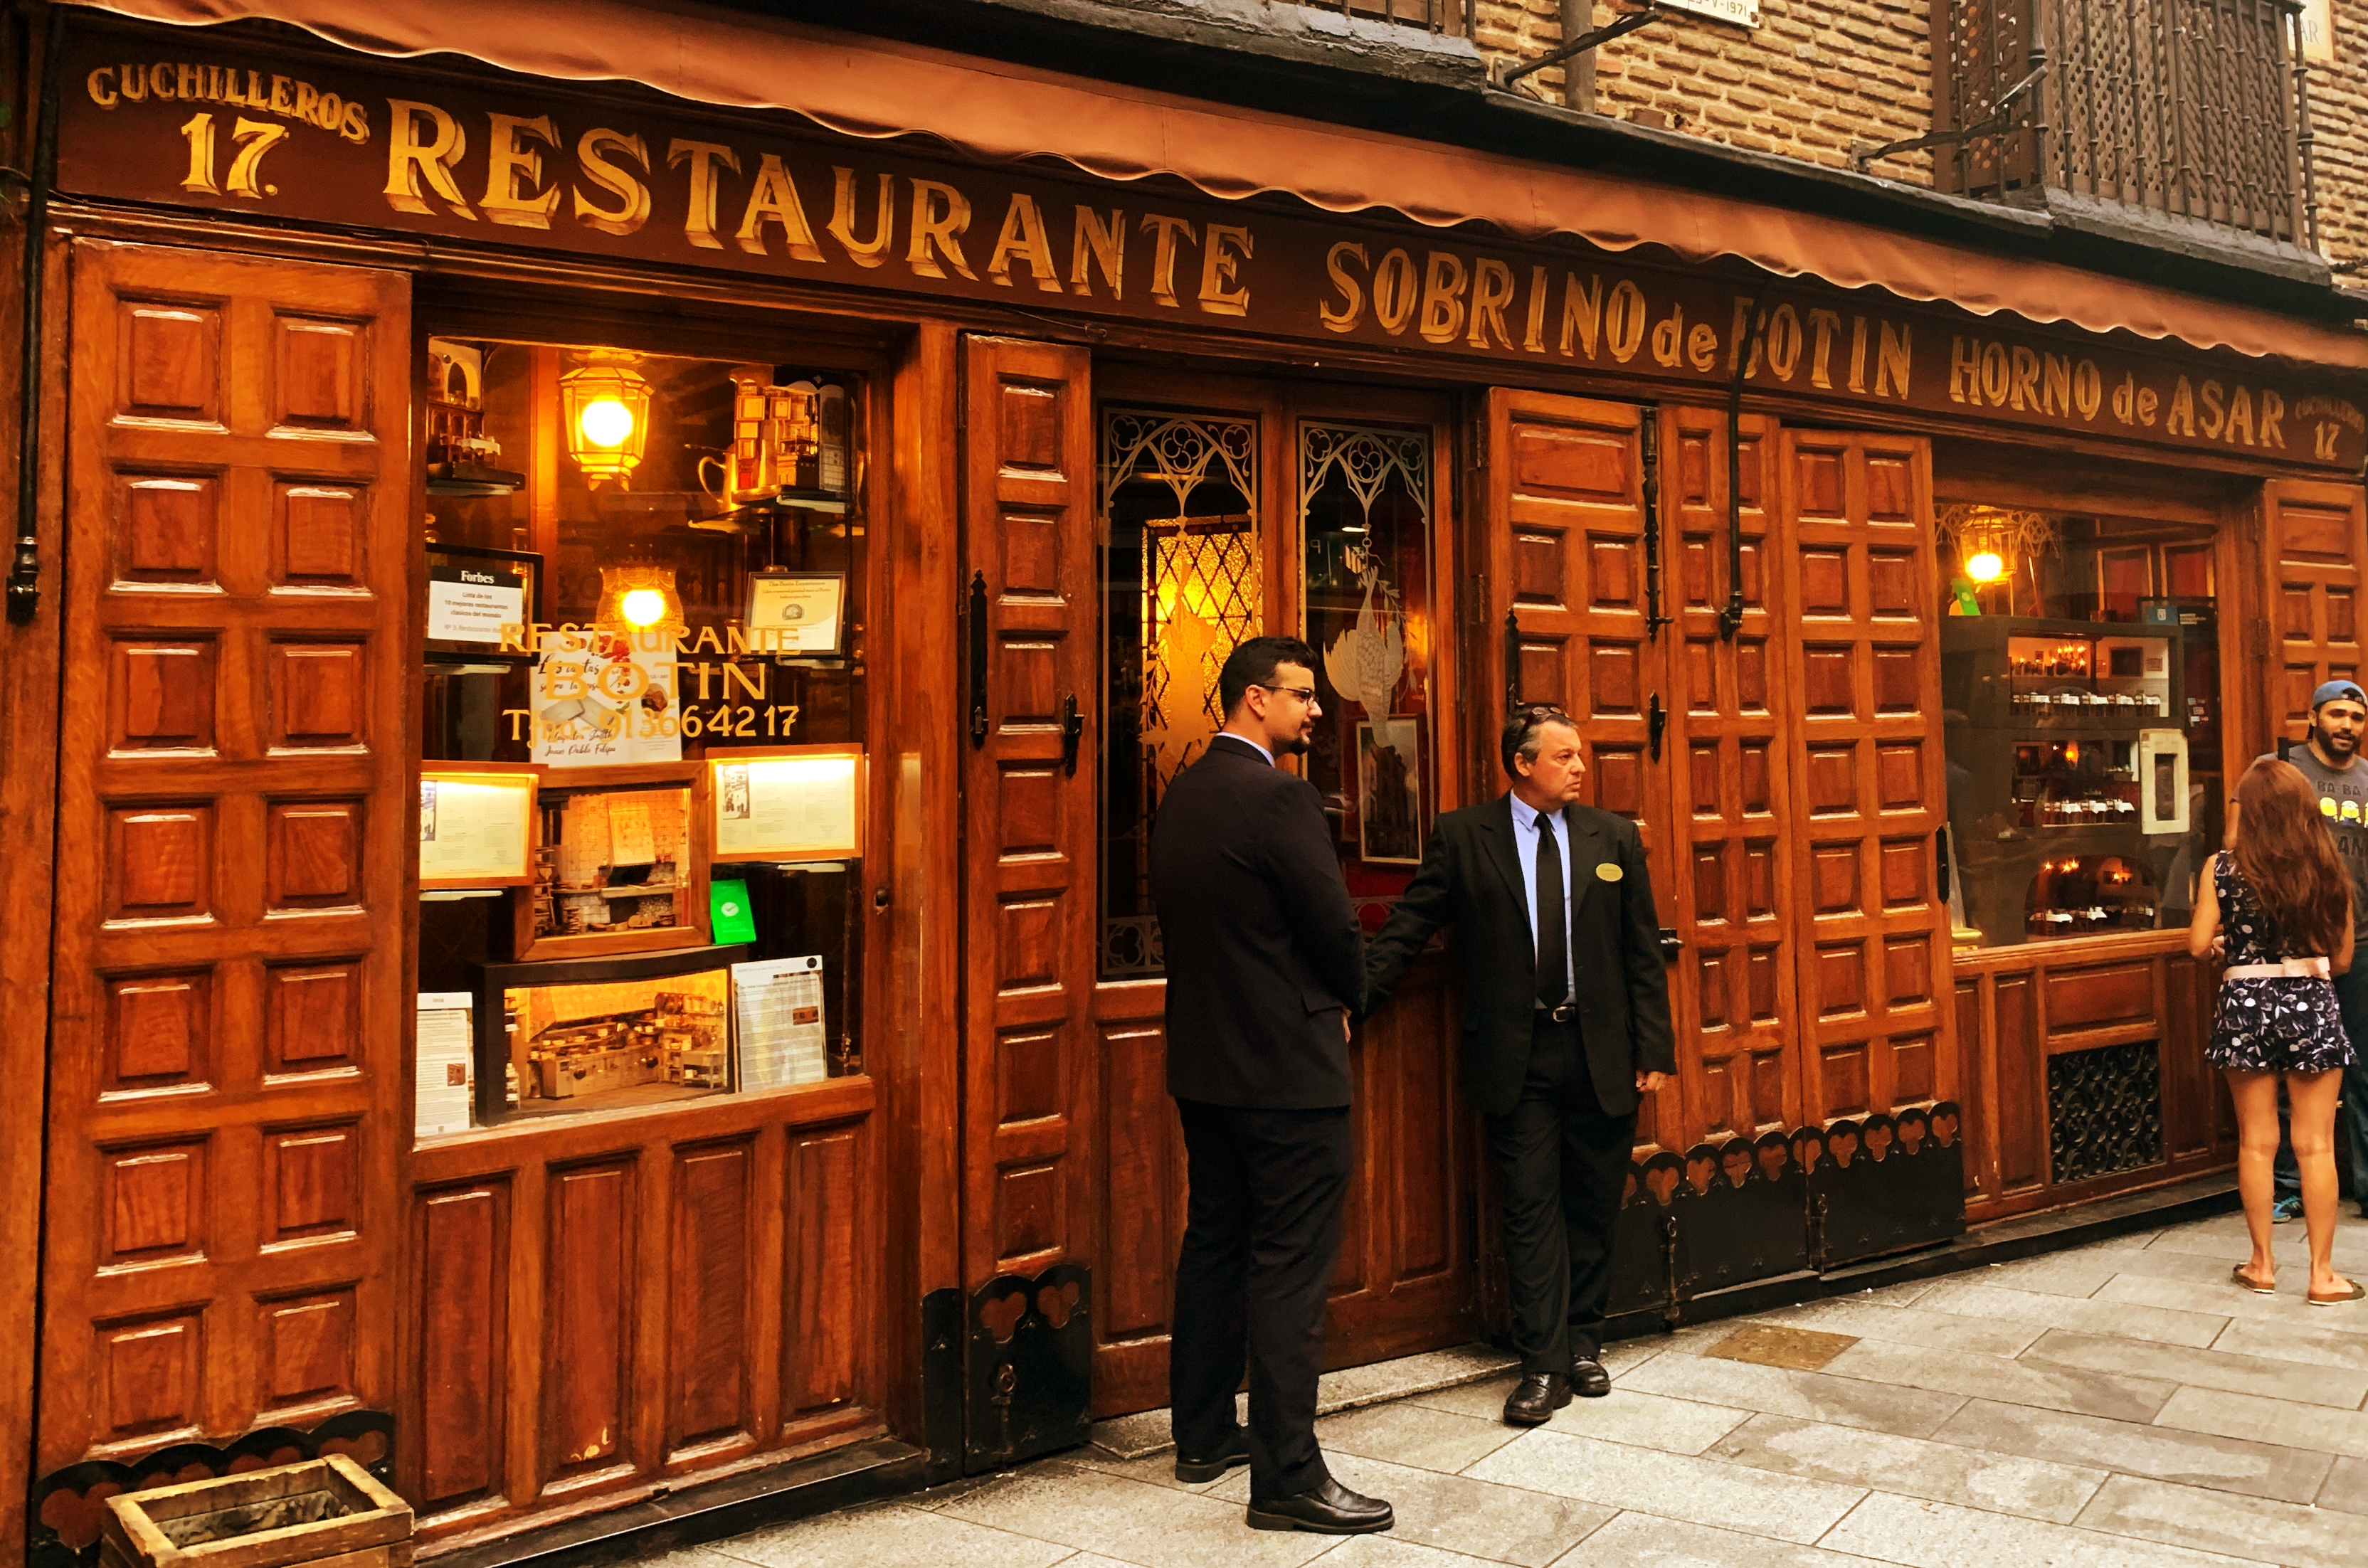 Things to do in Madrid: visit Sobrino de Botin